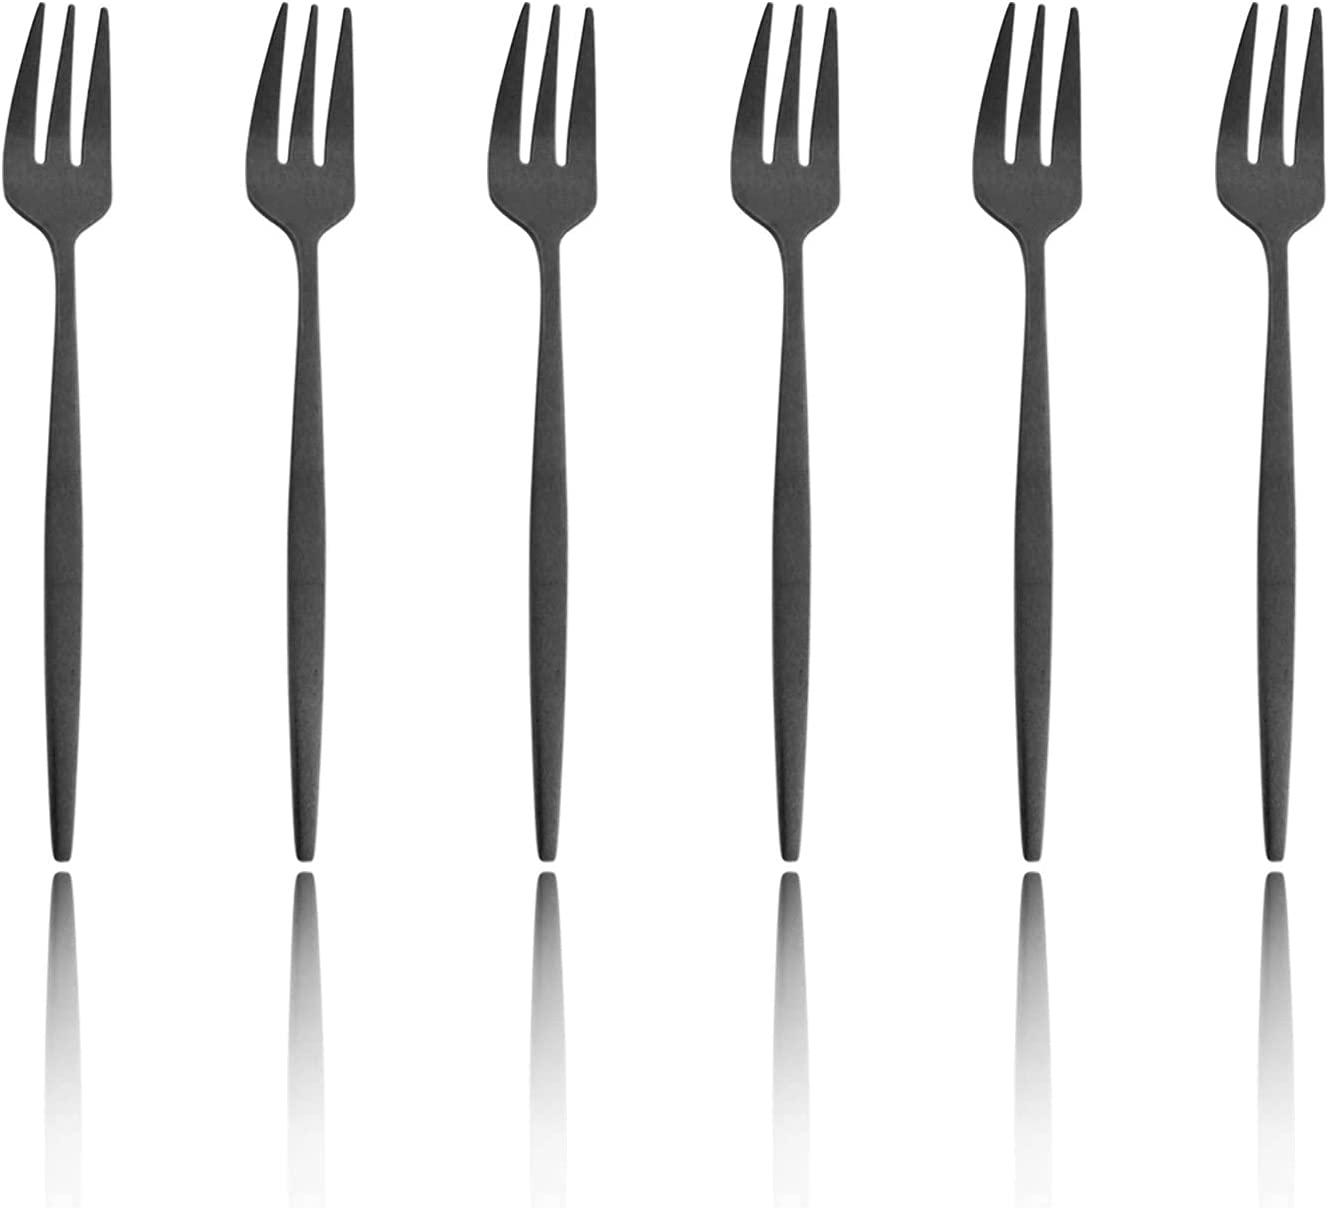 JANKNG 6 Max 70% OFF Pieces Stainless Steel Max 62% OFF Fruit Dessert Cake Fork 3-tine